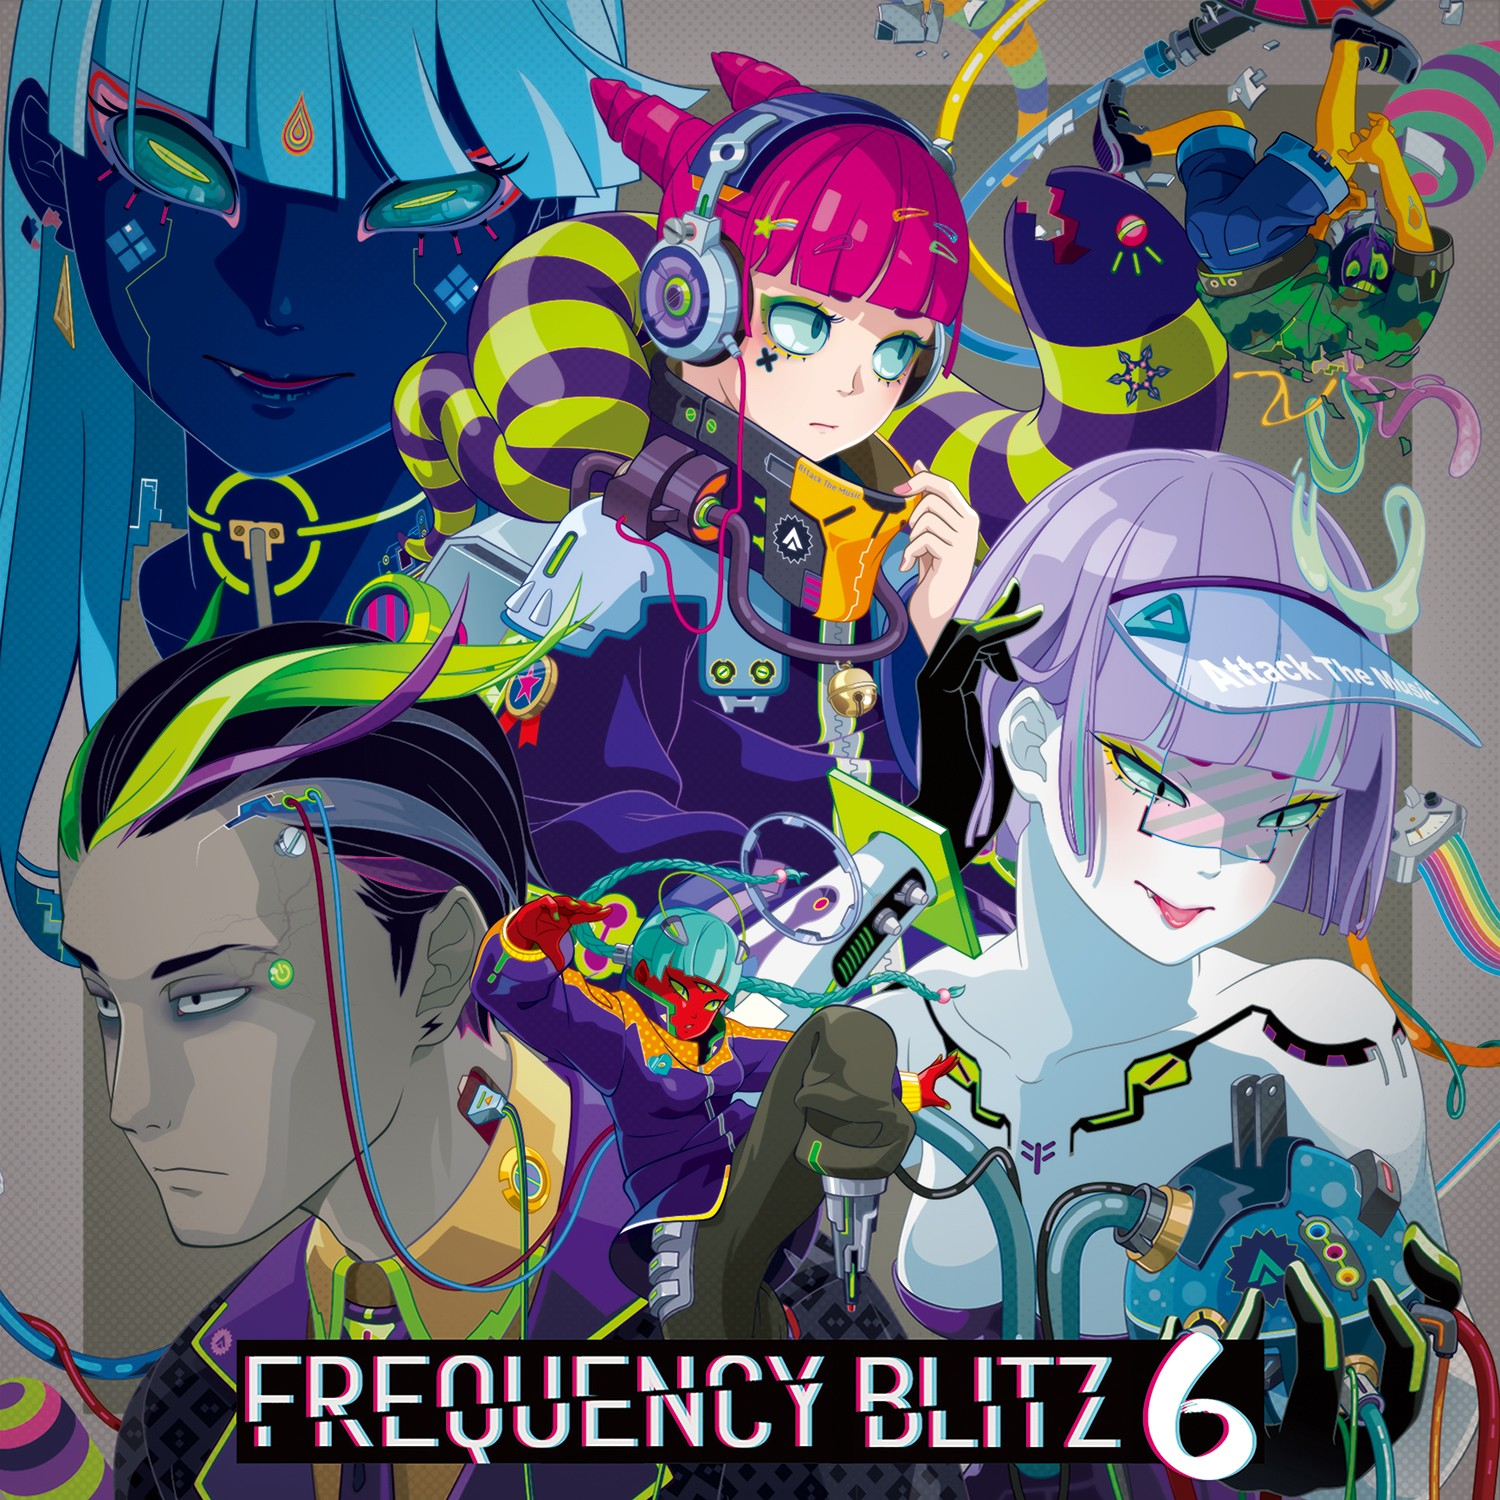 VA – Frequency Blitz 6 [MP3 320 / CD] [2018.10.28]